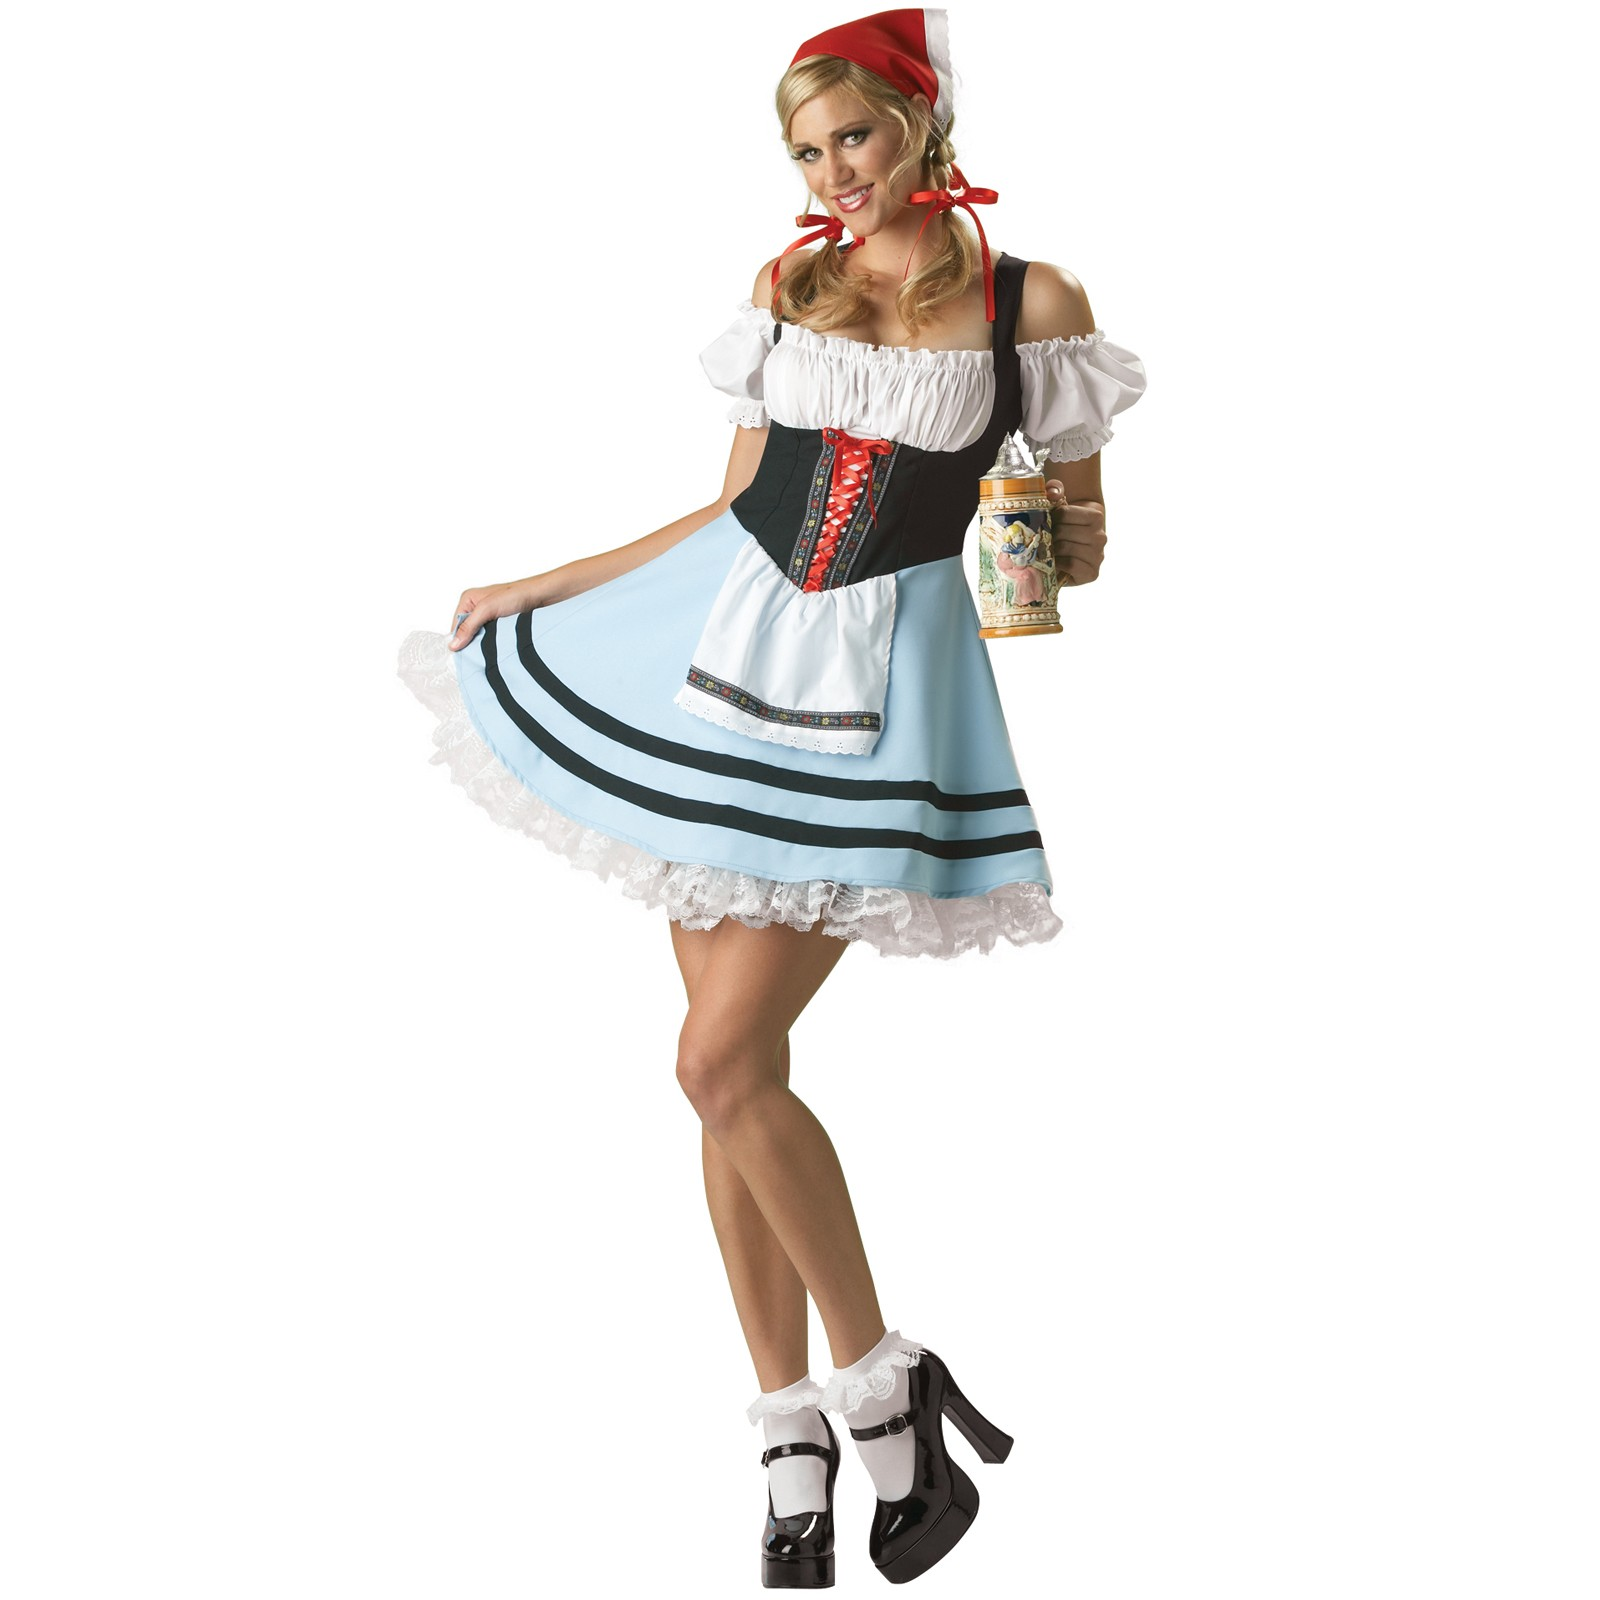 Adult womens costumes — photo 2